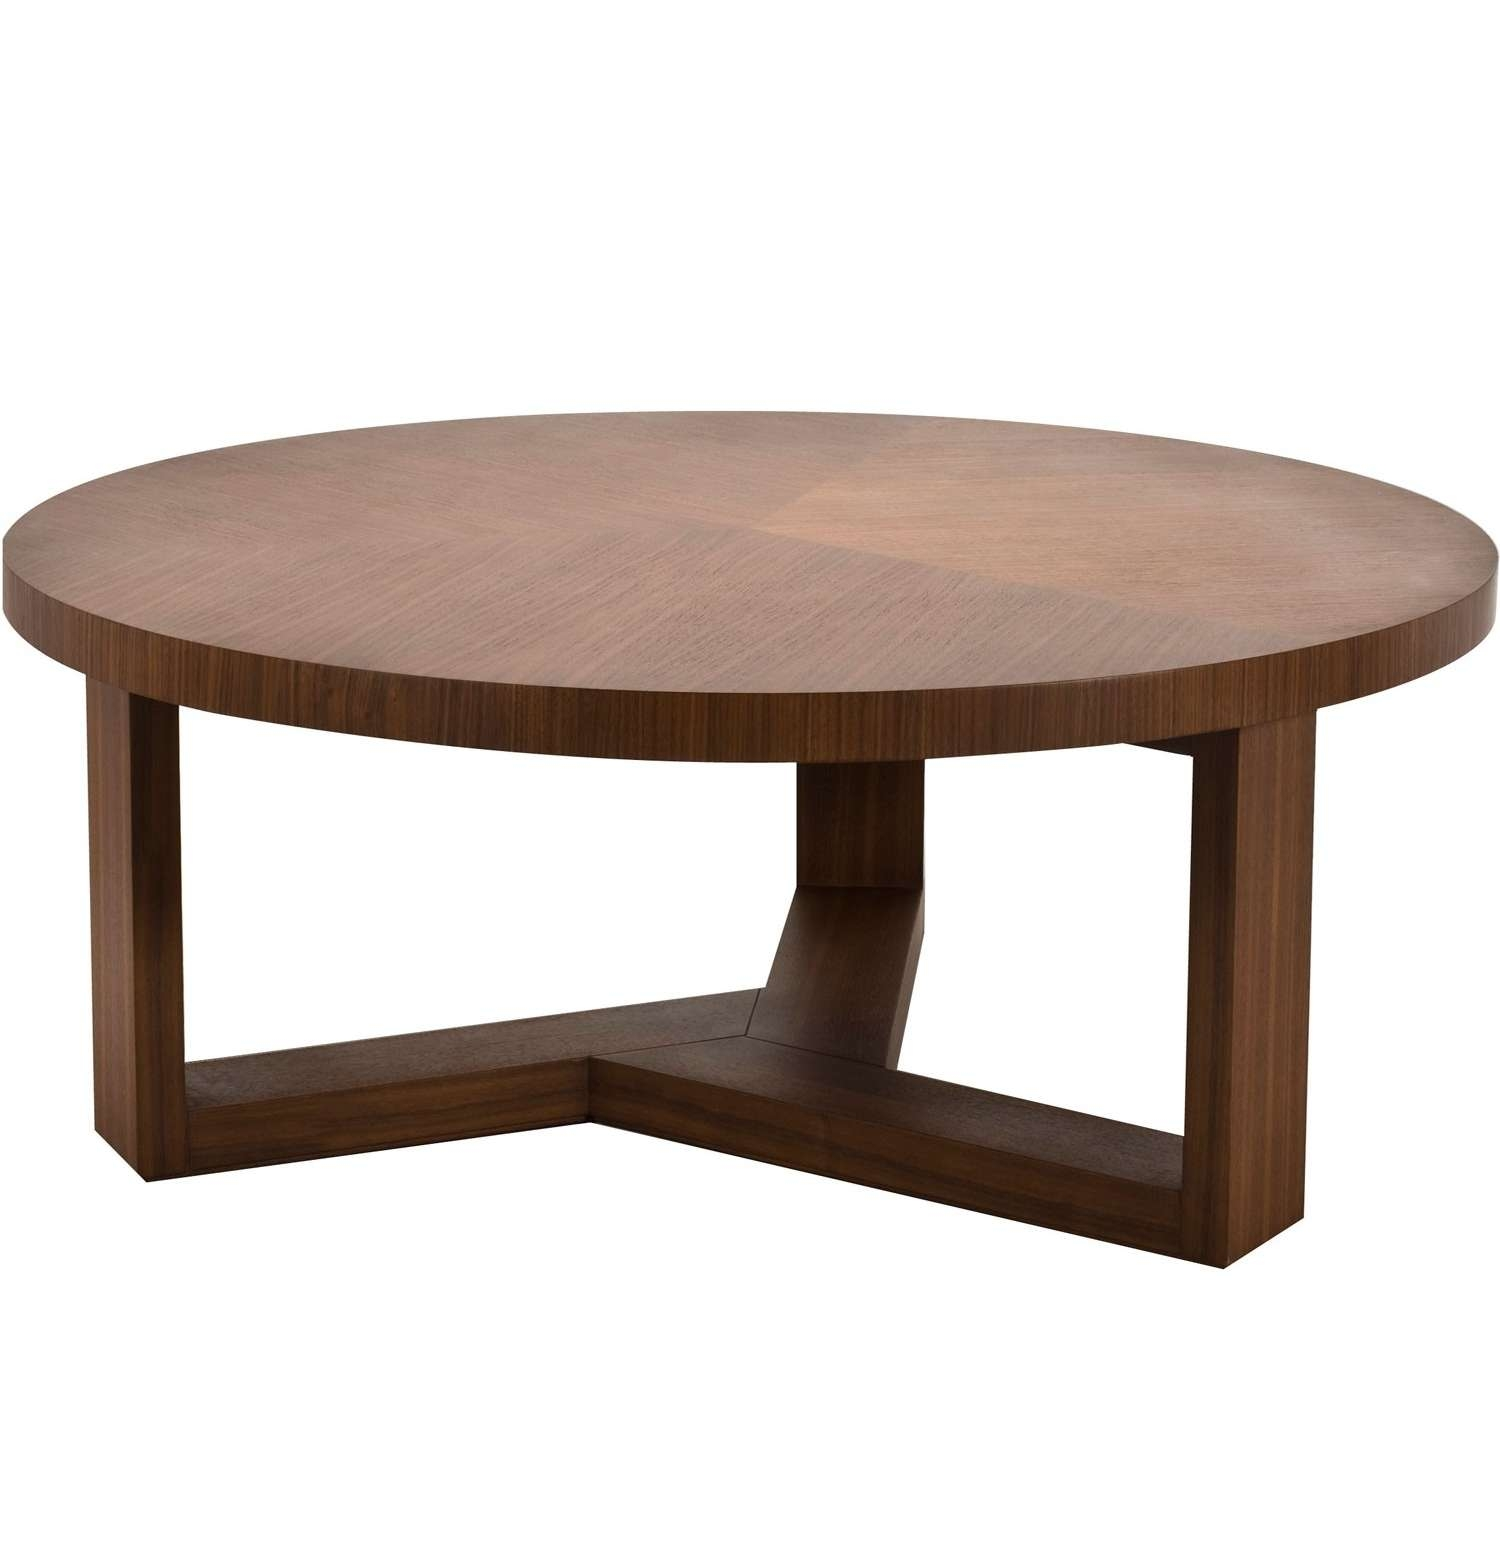 Coffee Tables : Furniture Round Coffee Table Rustic Wooden Plans Within Popular Small Circular Coffee Table (View 20 of 20)